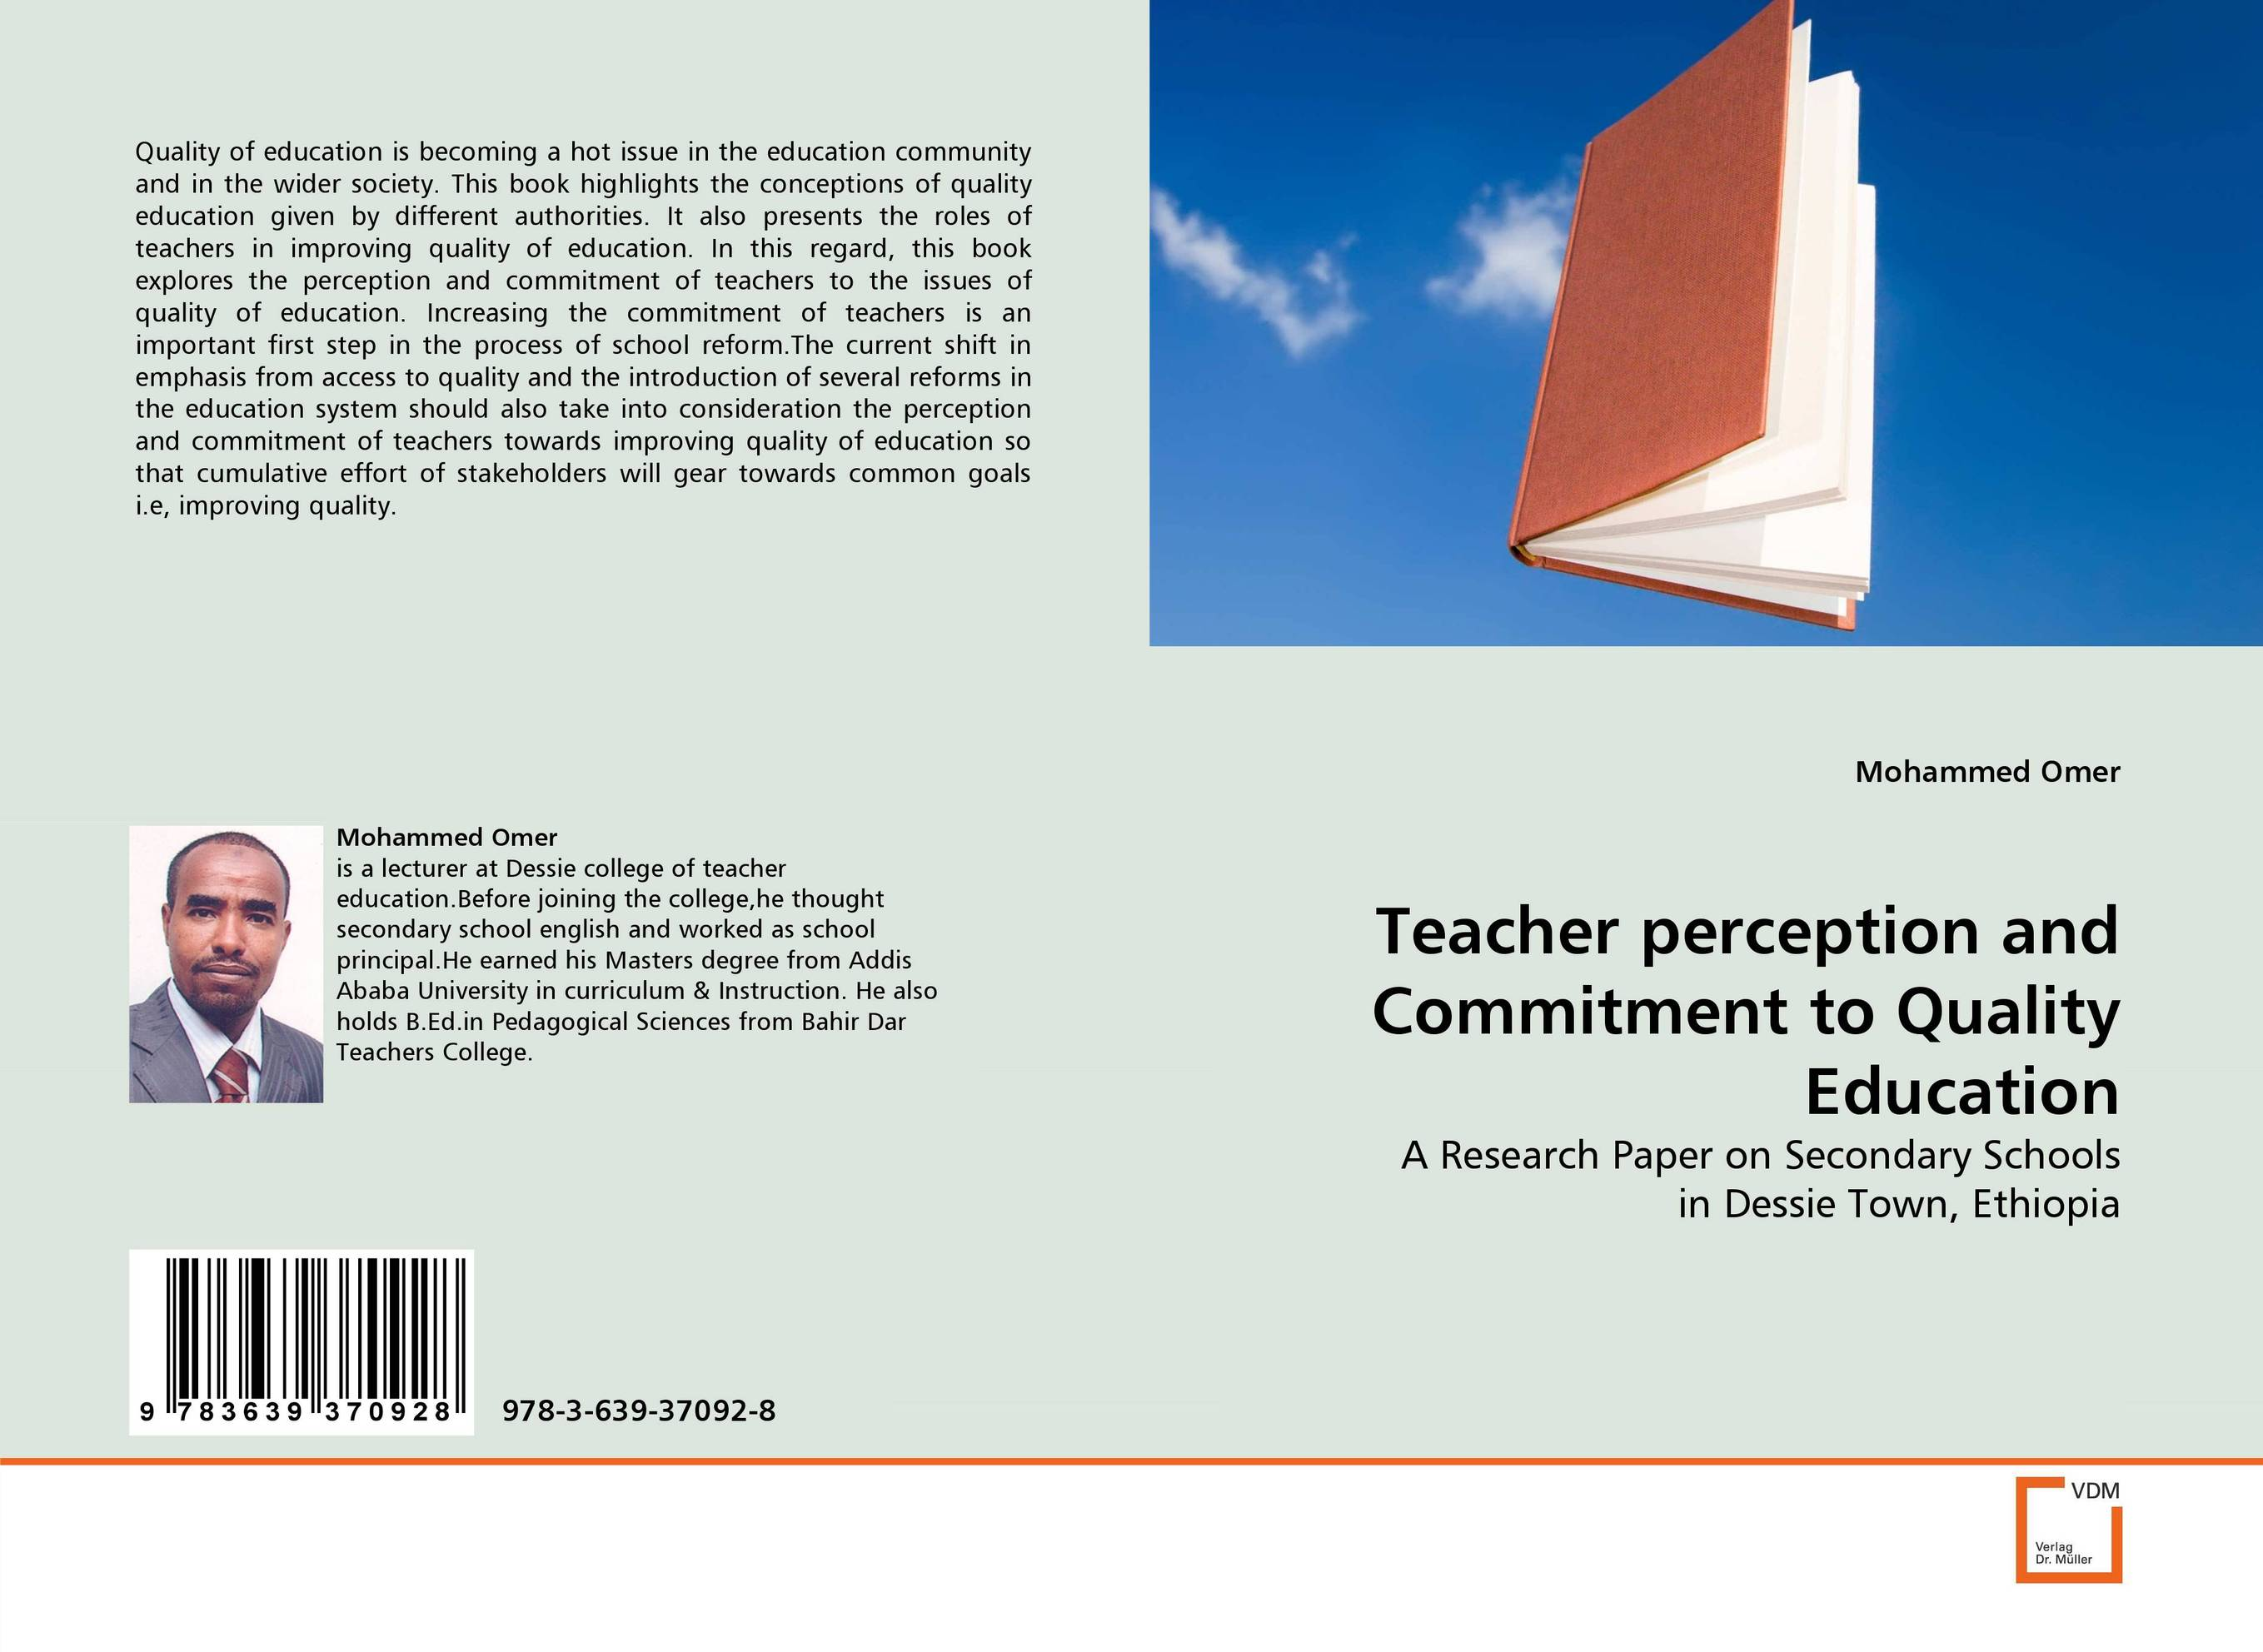 Teacher perception and Commitment to Quality Education quality perception